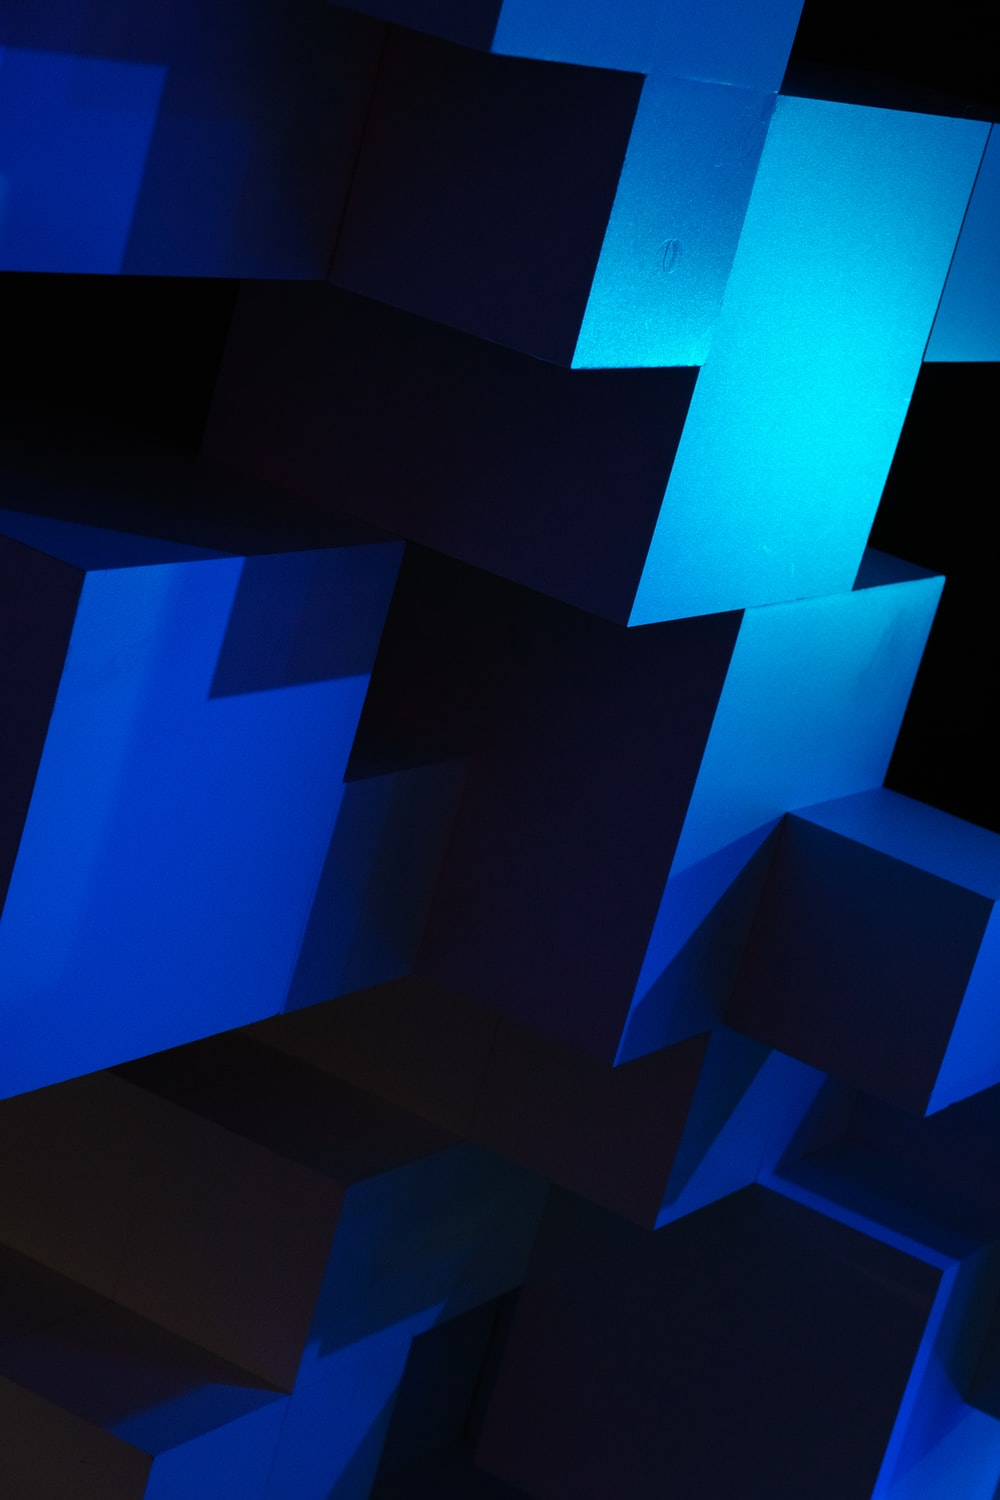 blue and black abstract illustration